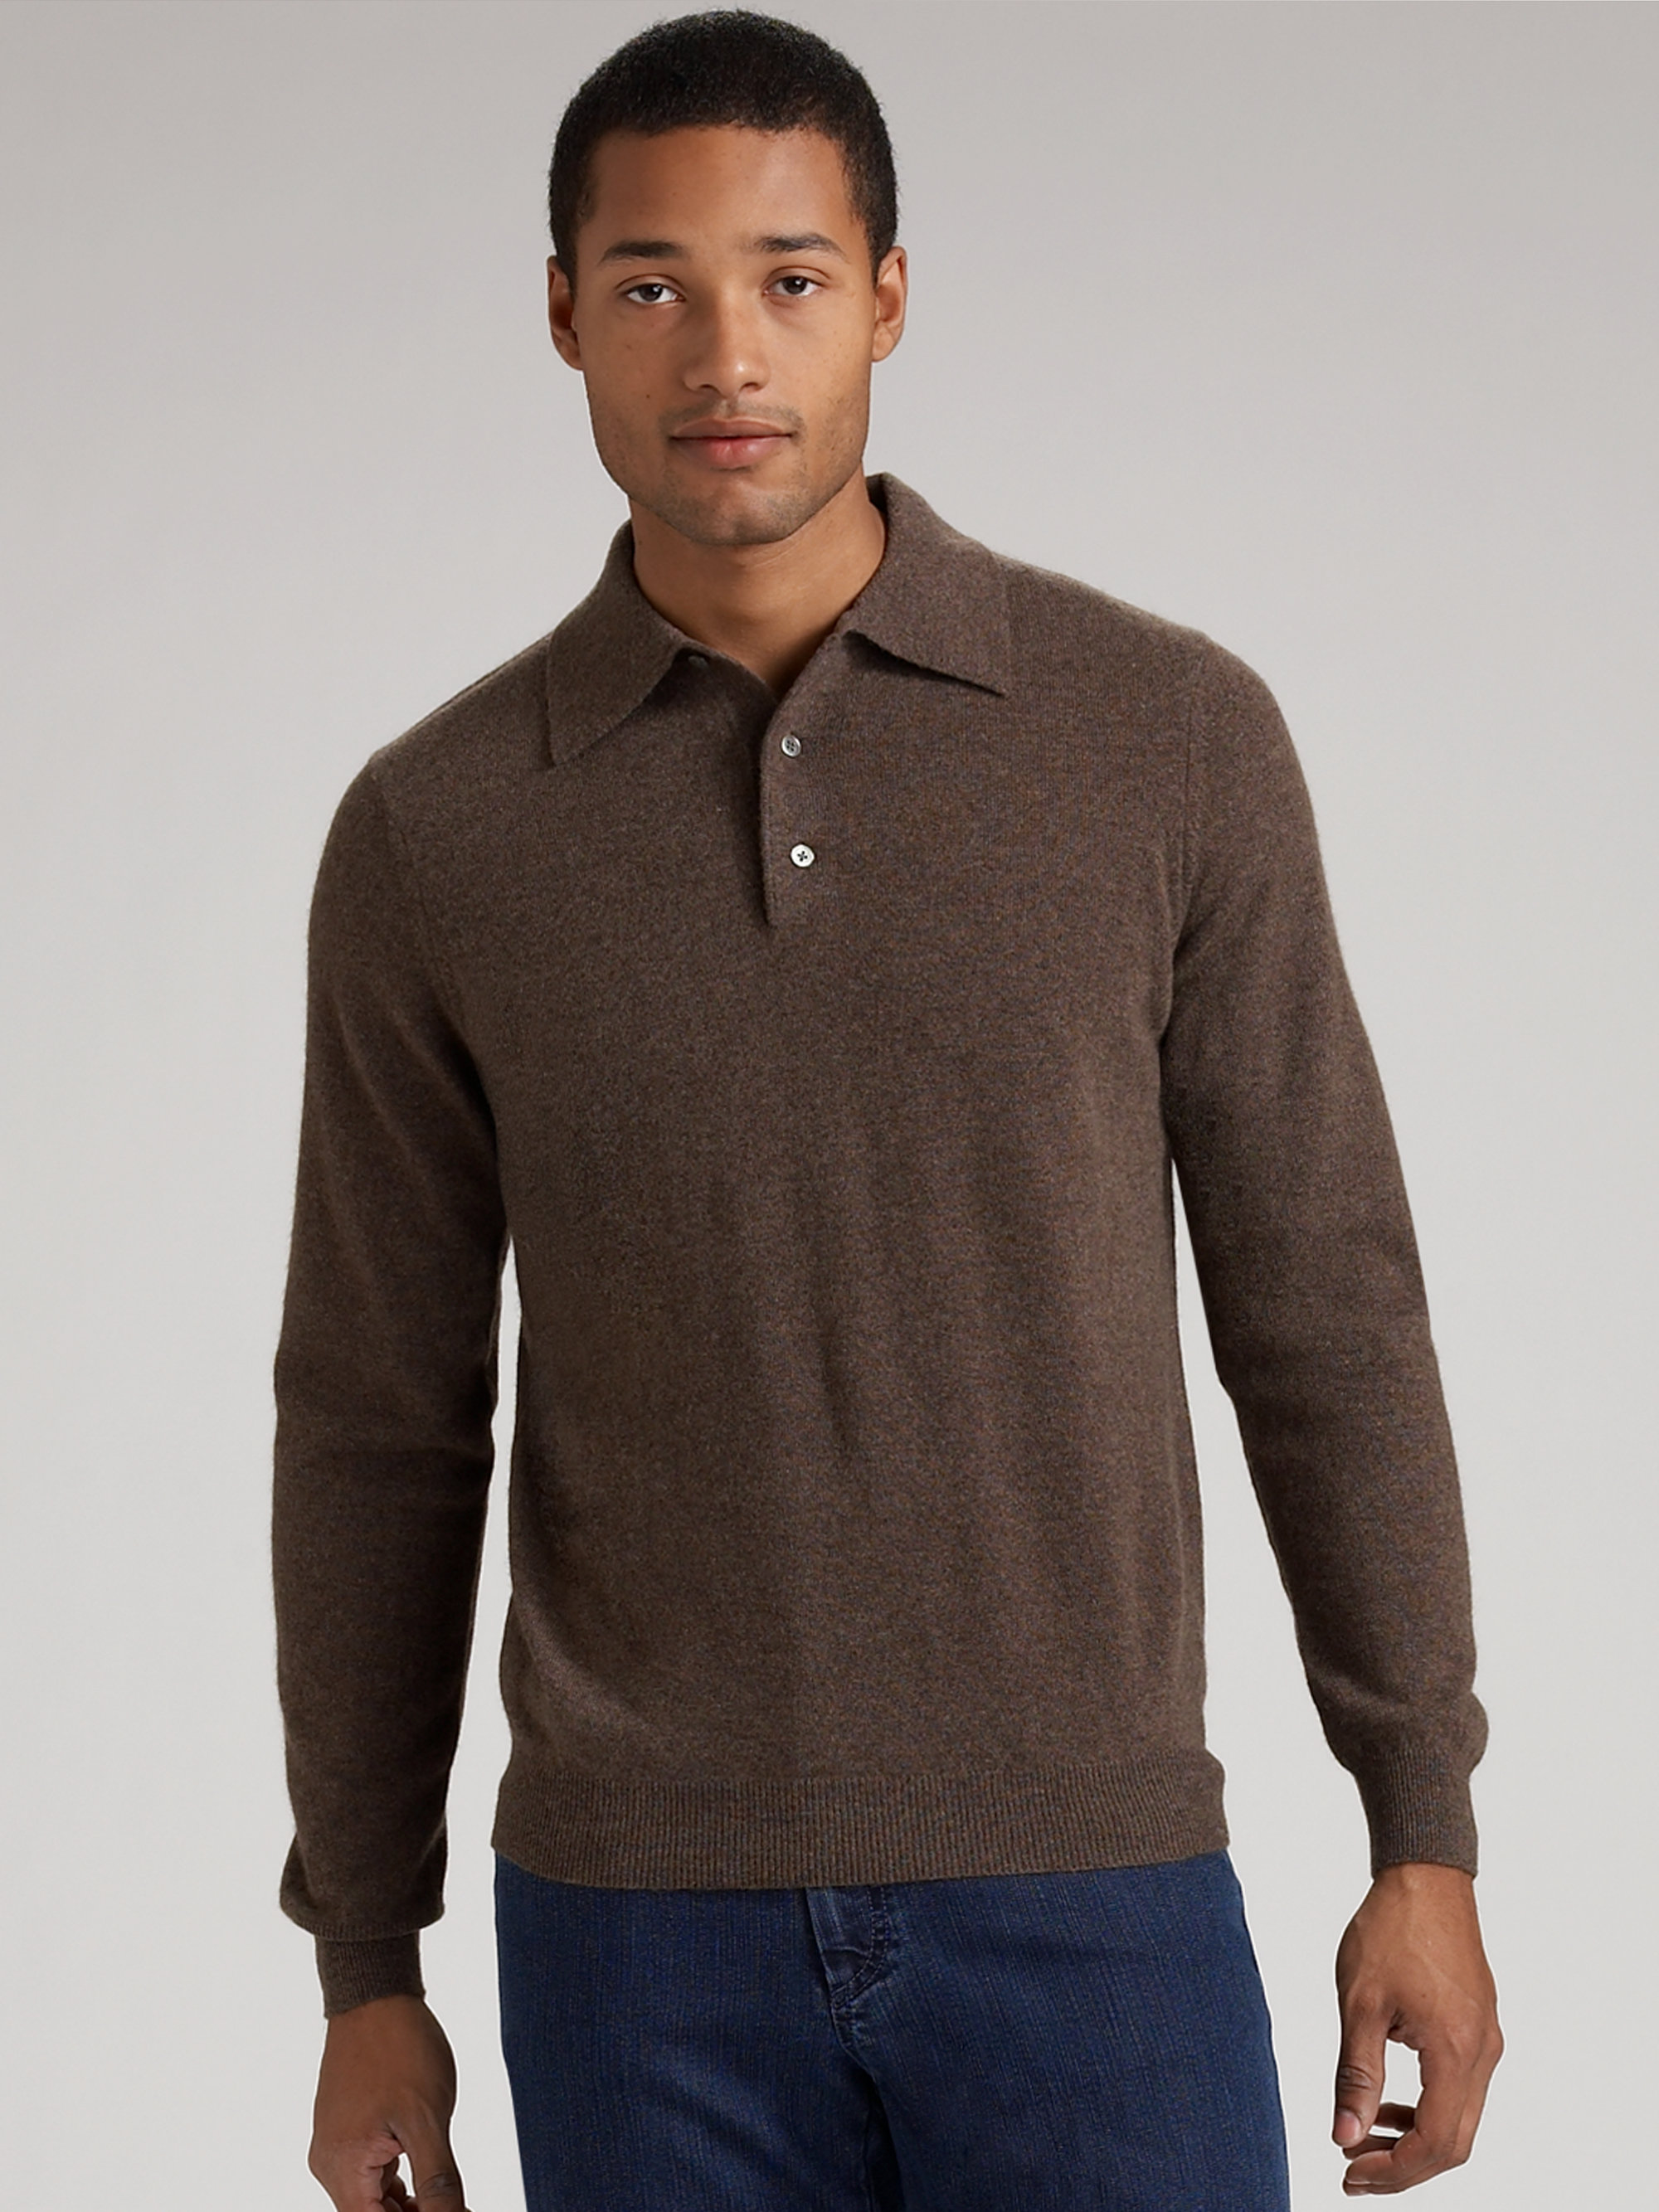 Saks fifth avenue men collection cashmere polo sweater in for Mens sweater collared shirt